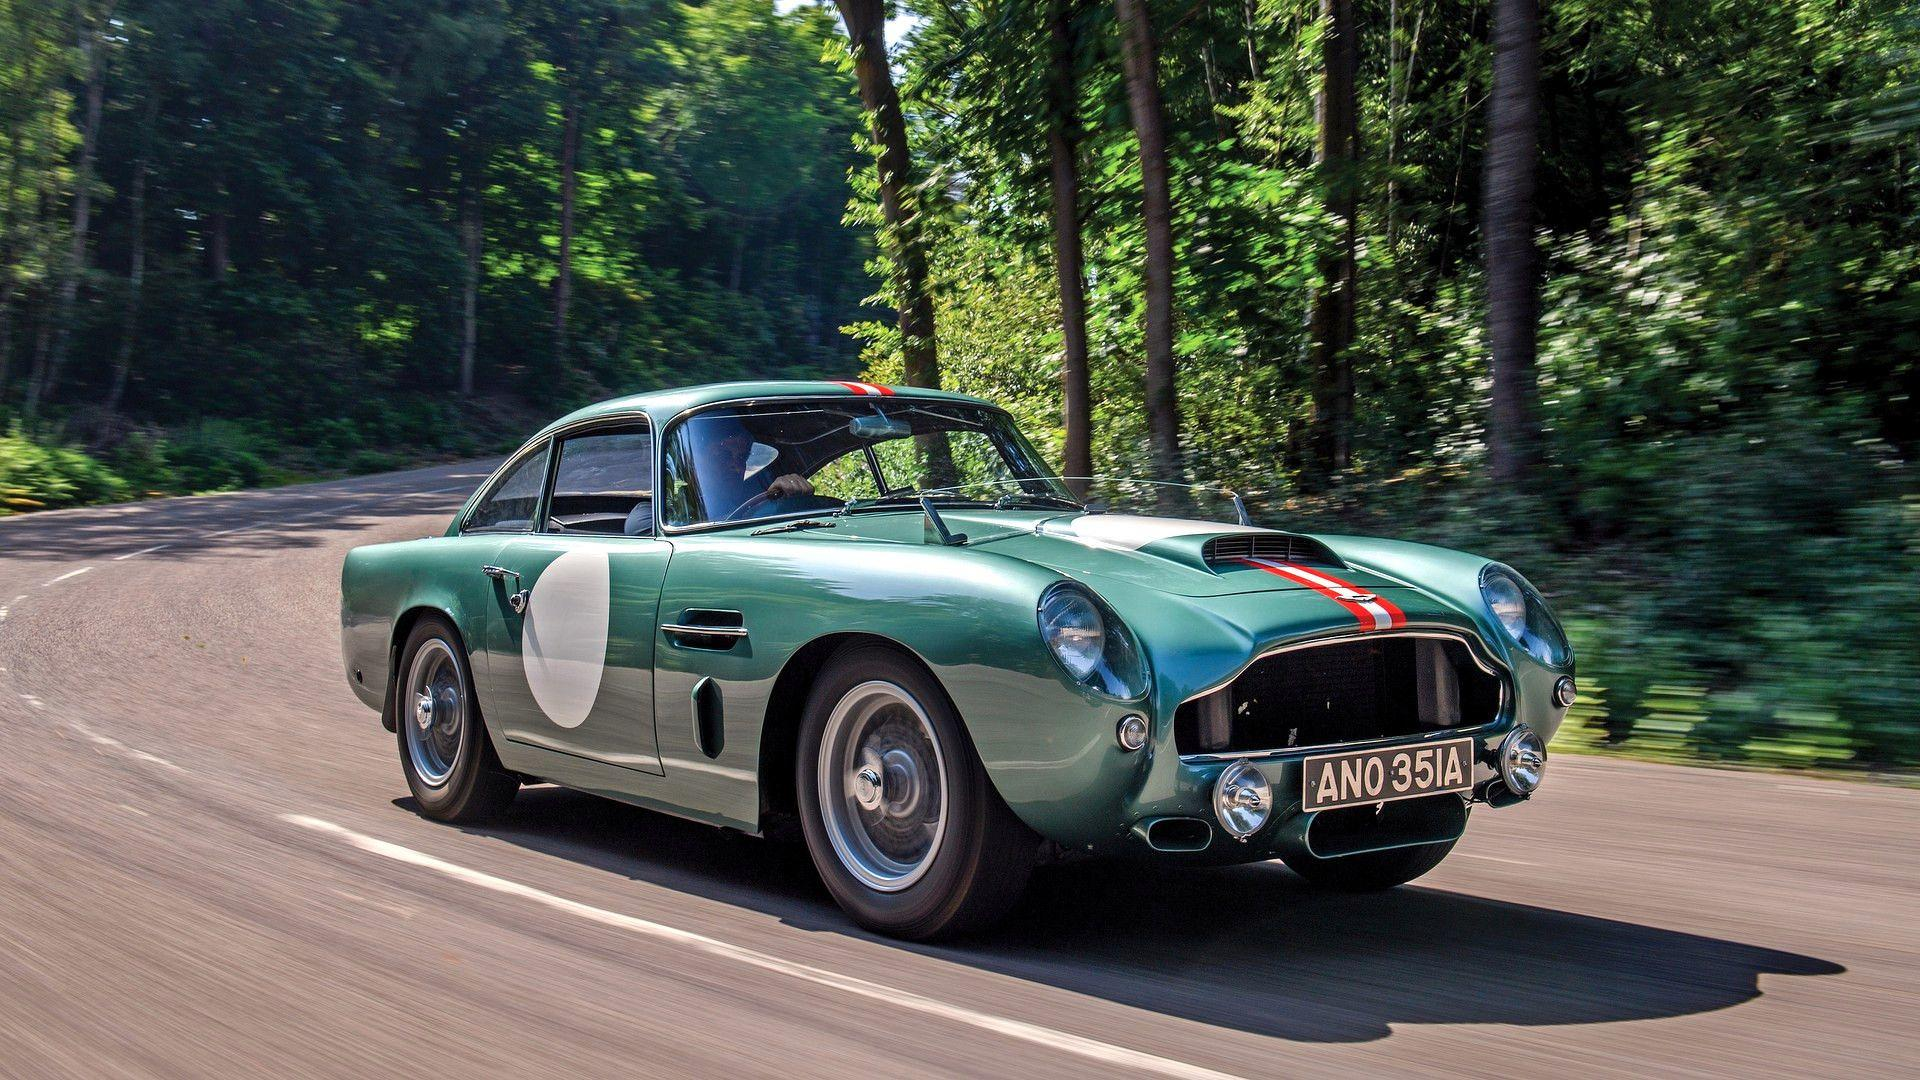 1959-aston-martin-db4gt-copyright-tim-scott-rm-sothebys (5)